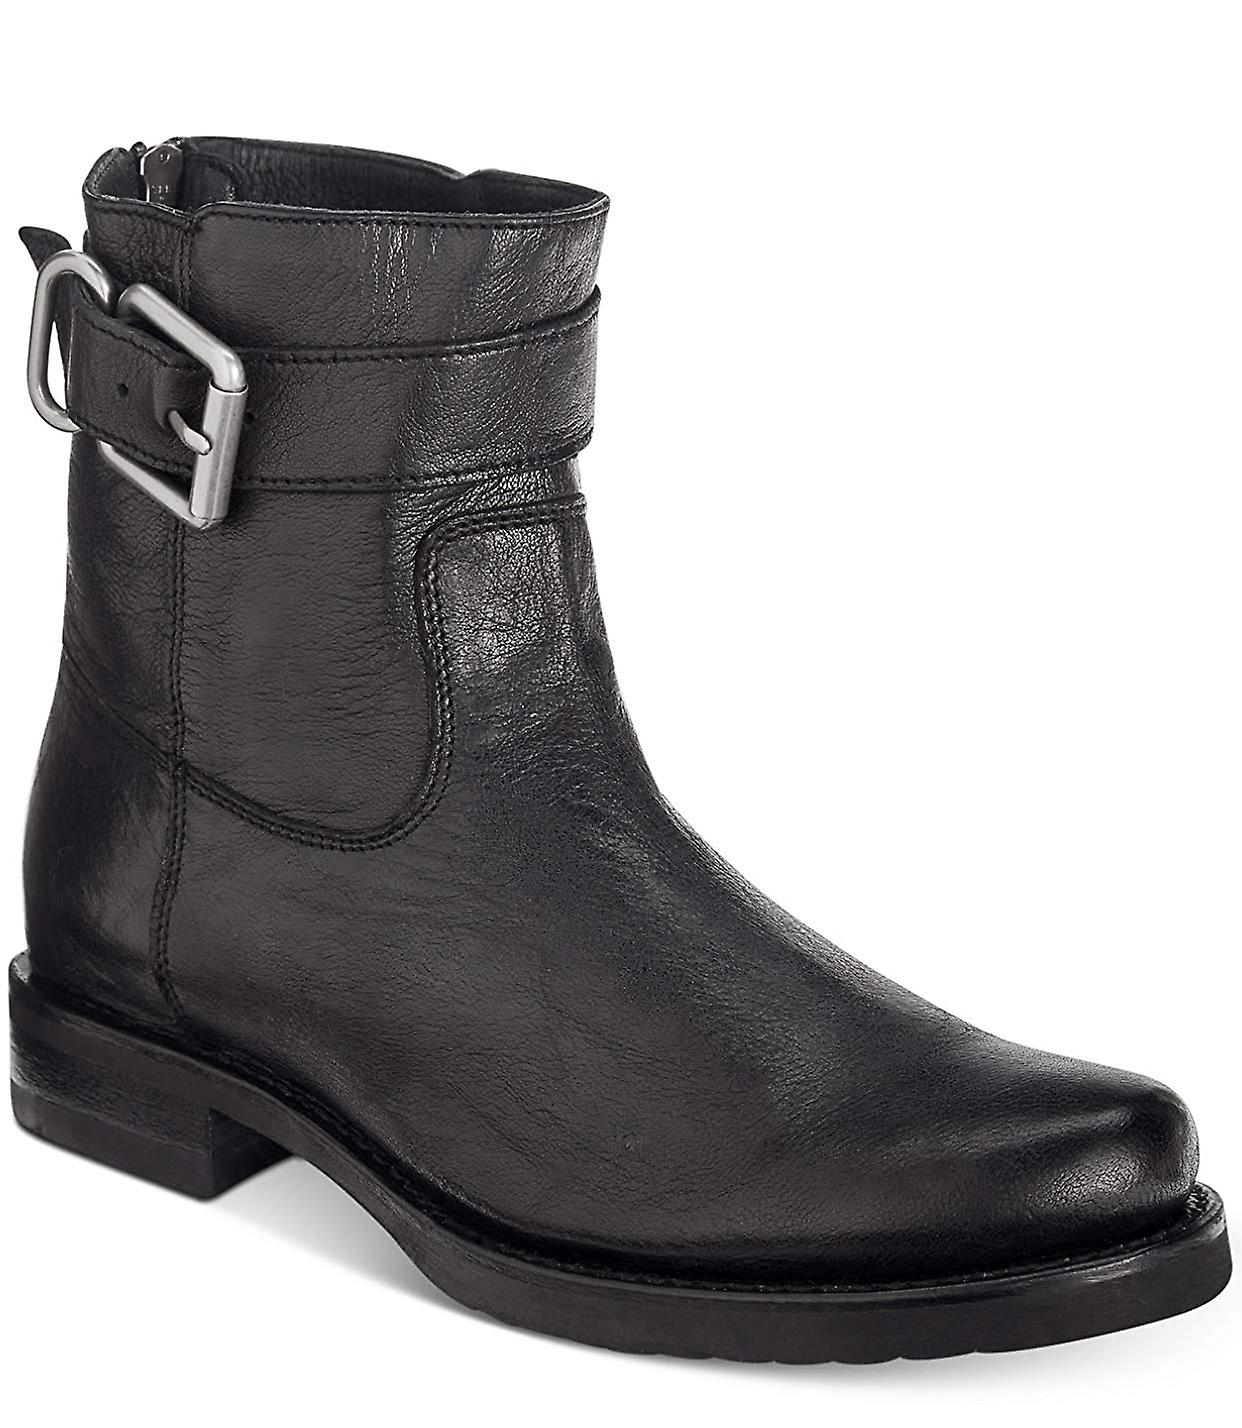 Frye Femme Veronica Cuir Round Toe Ankle Chelsea Bottes